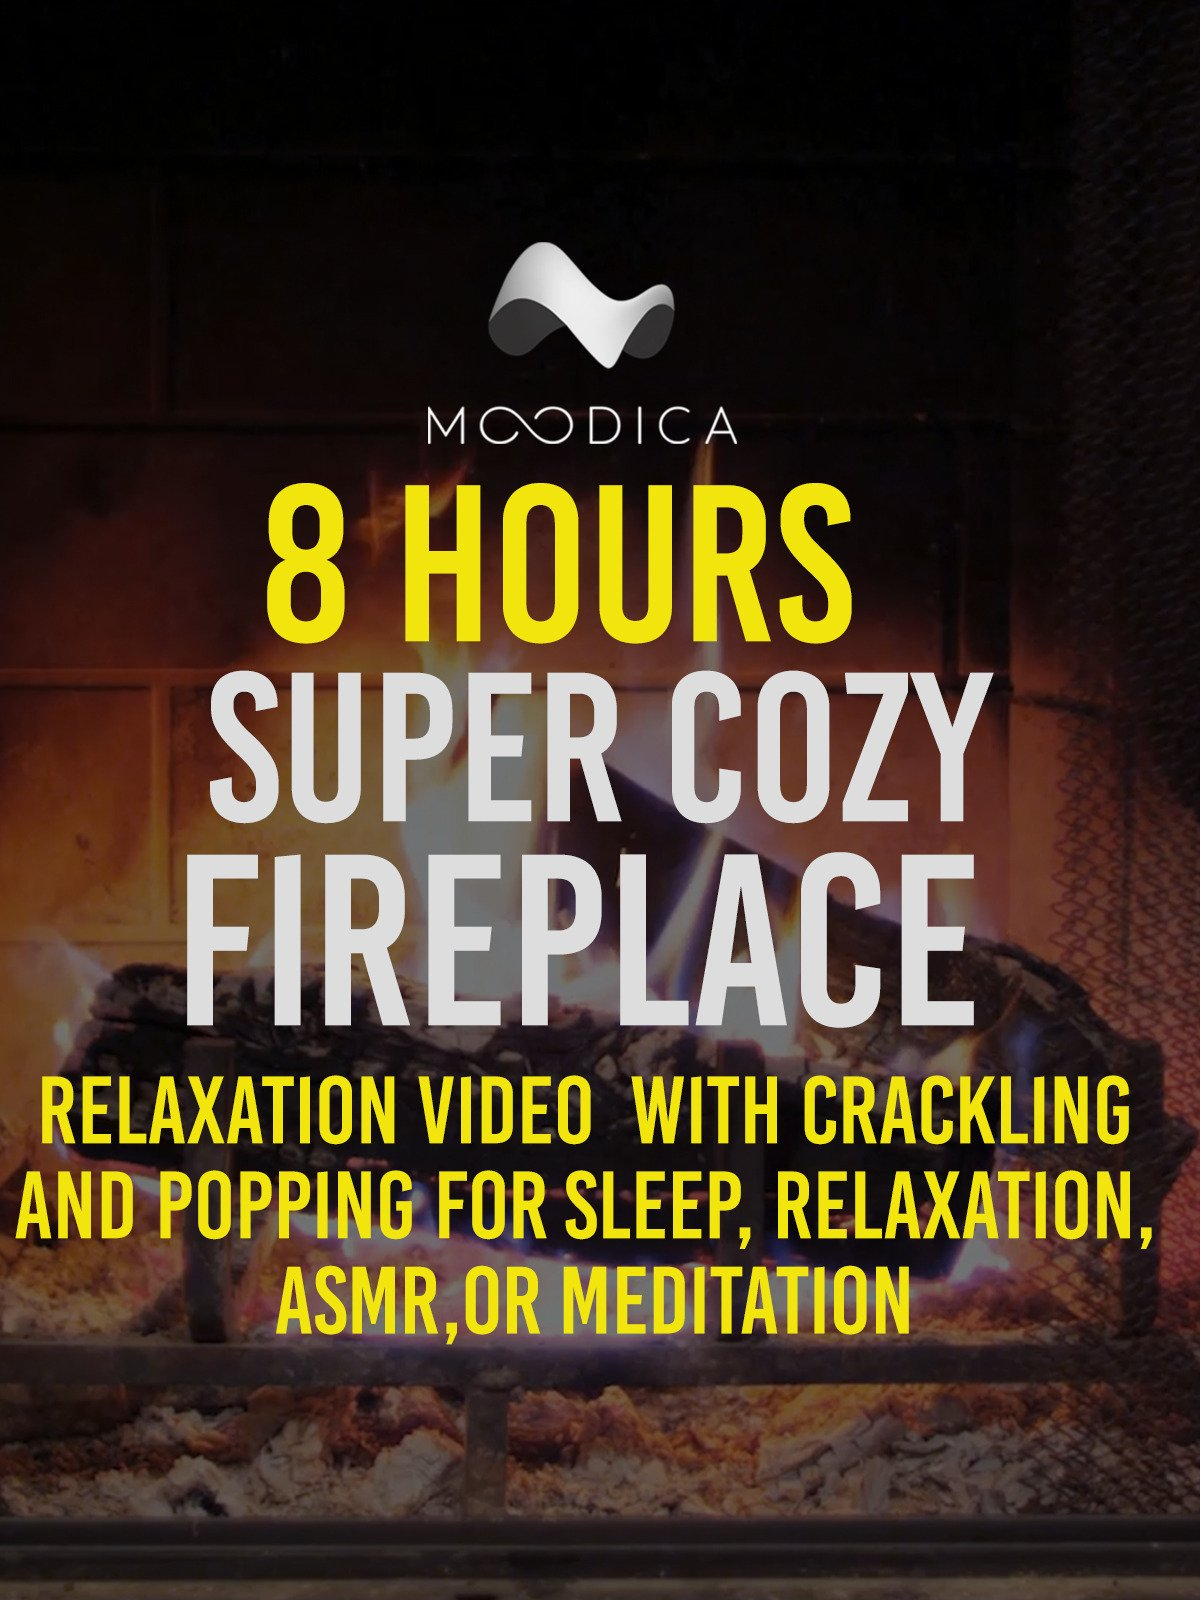 8 Hours: Super Cozy Fireplace: Relaxation Video with Crackling and Popping Sounds For Sleep, Relaxation, ASMR or Meditation